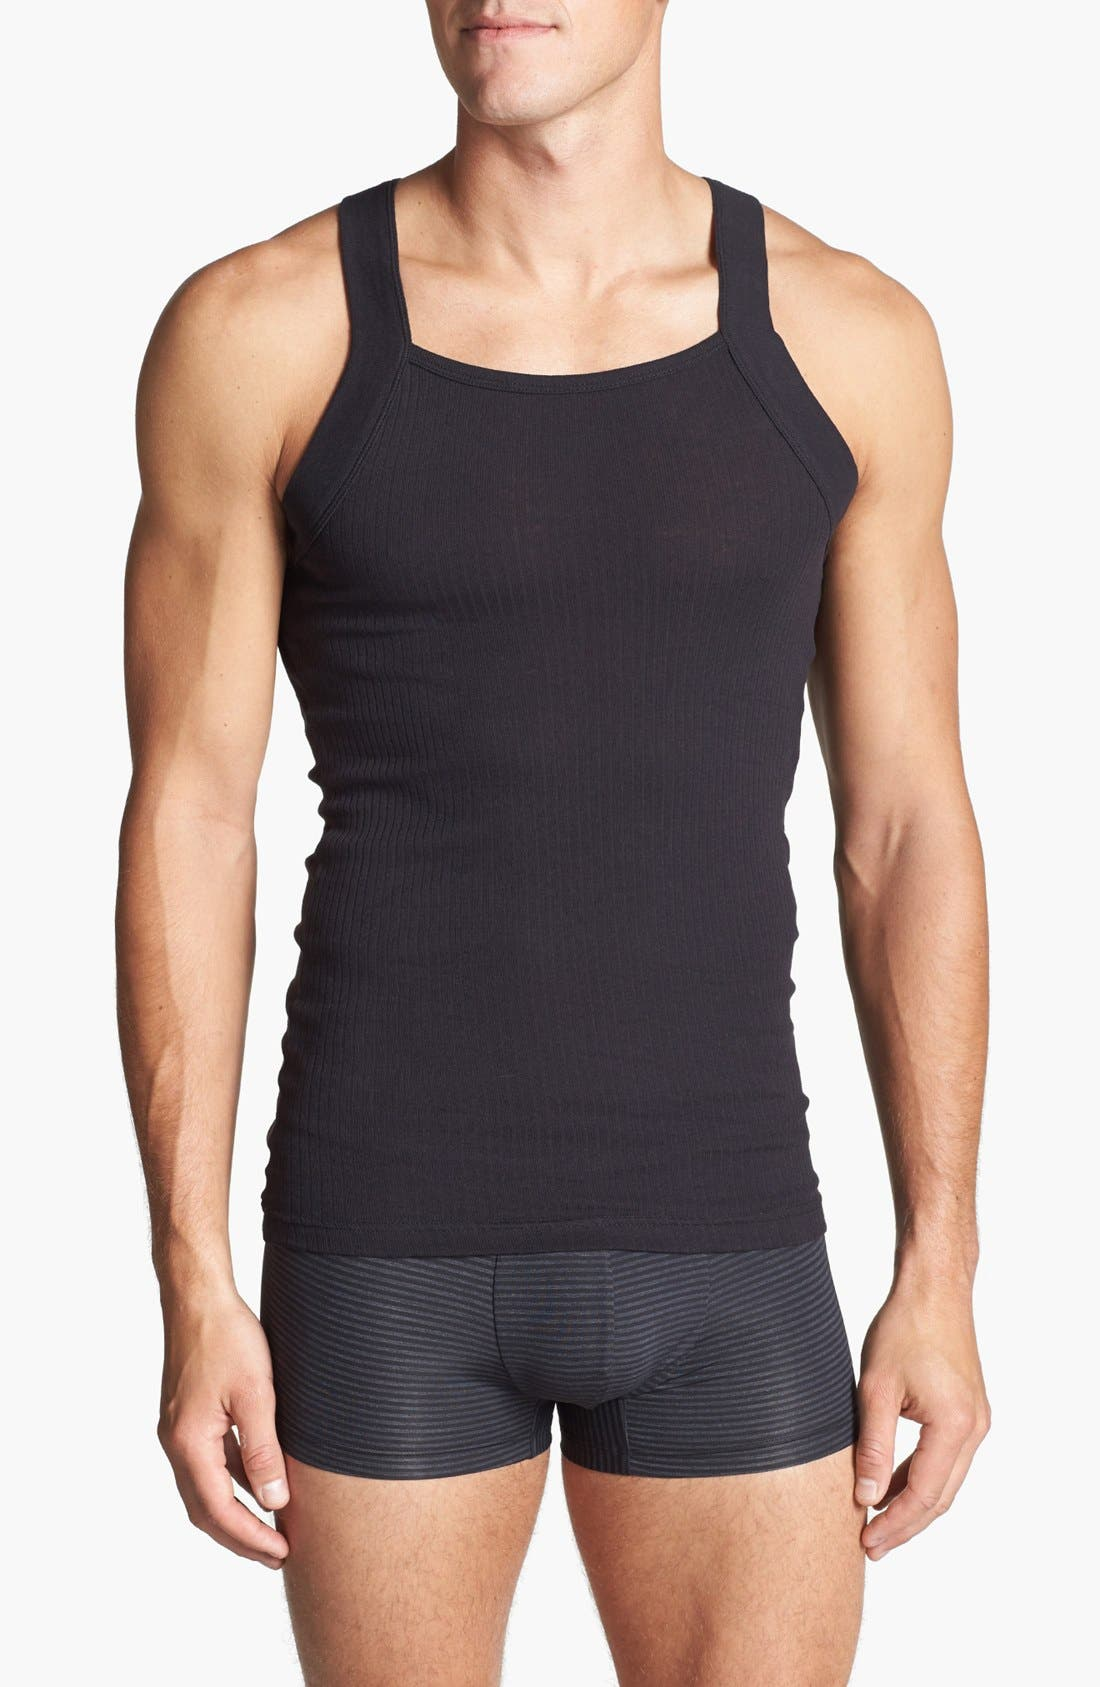 Alternate Image 1 Selected - 2(x)ist 2-Pack Cotton Tank Top